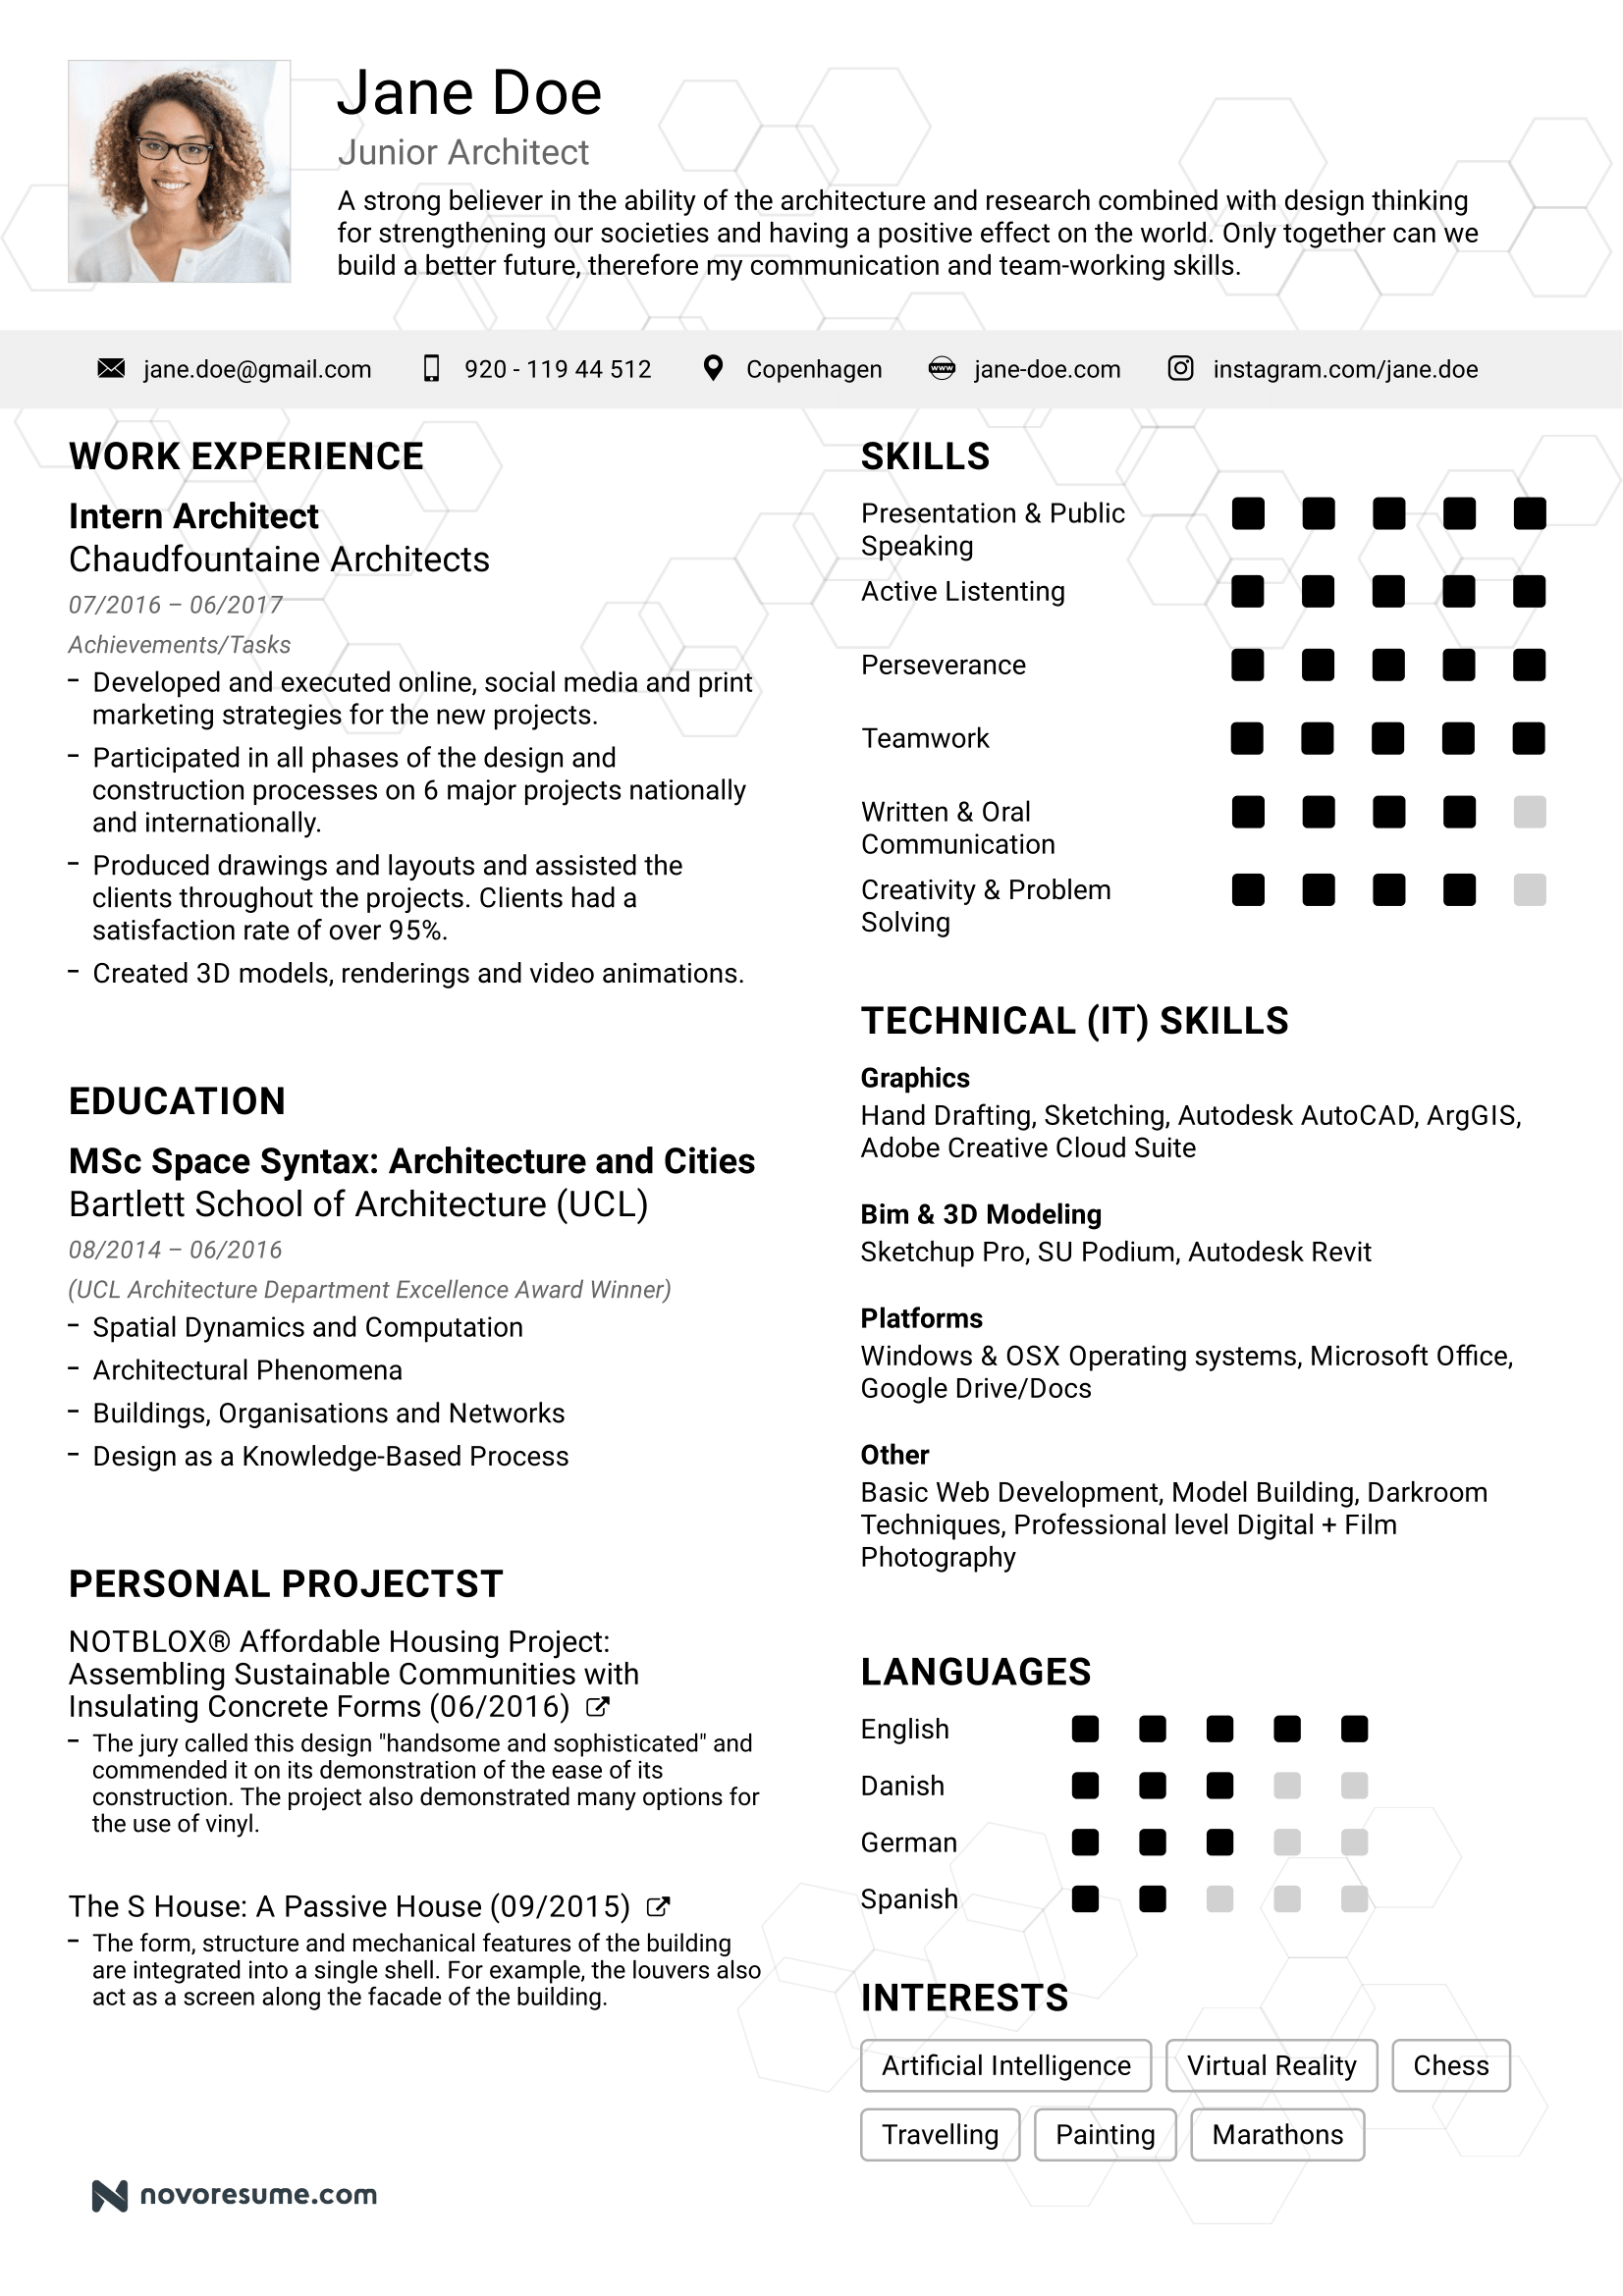 Resume for job samples diagne. Nuevodiario. Co.